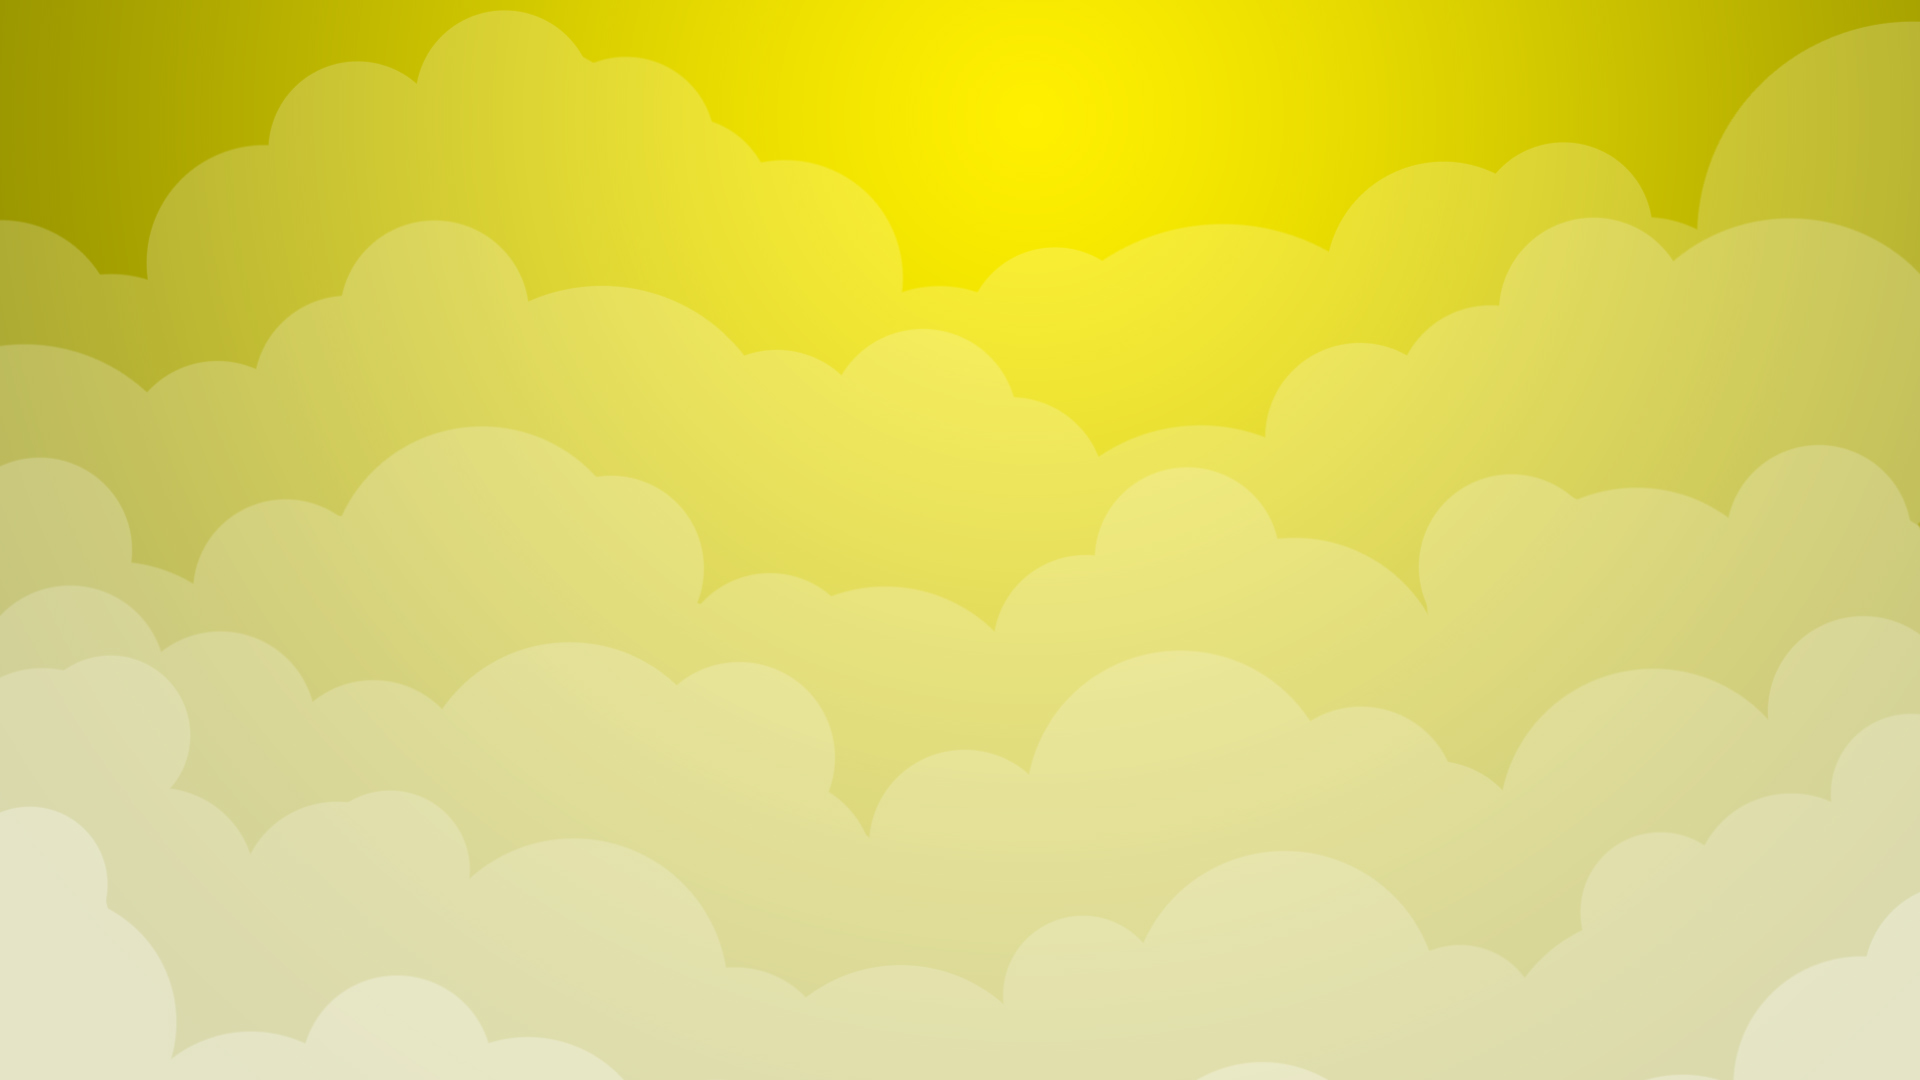 Light Color Yellow Wallpaper Sparknotes 4 High Resolution Wallpaper 1920x1080